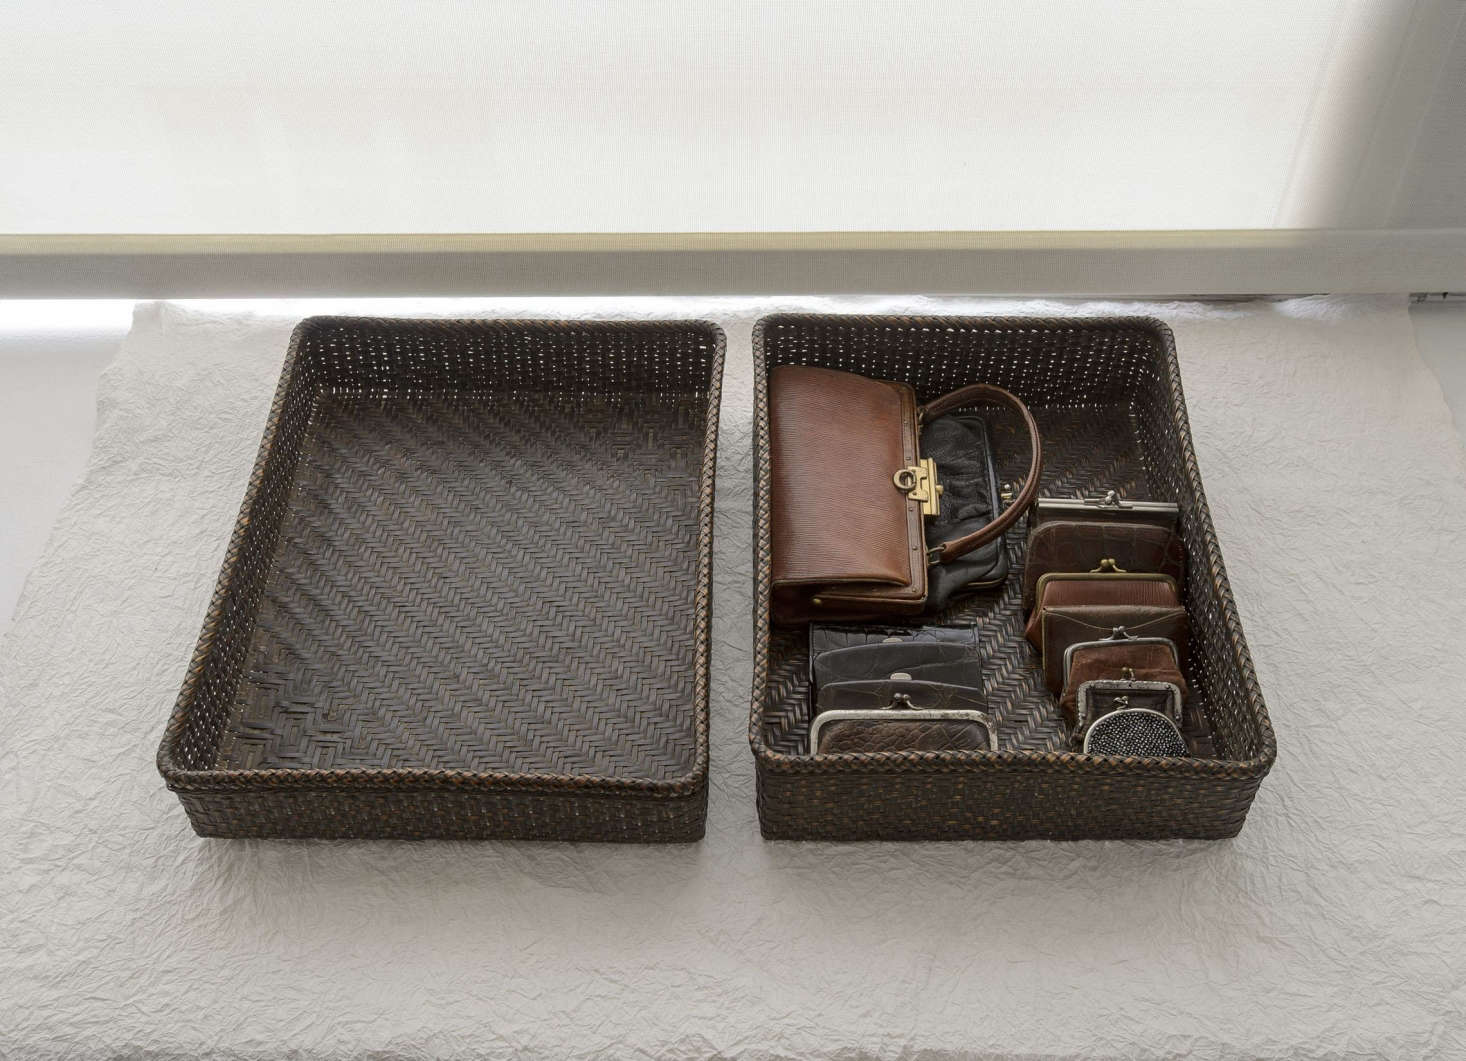 A collection of Makié's miniature vintage purchases kept in an antique wedding basket.